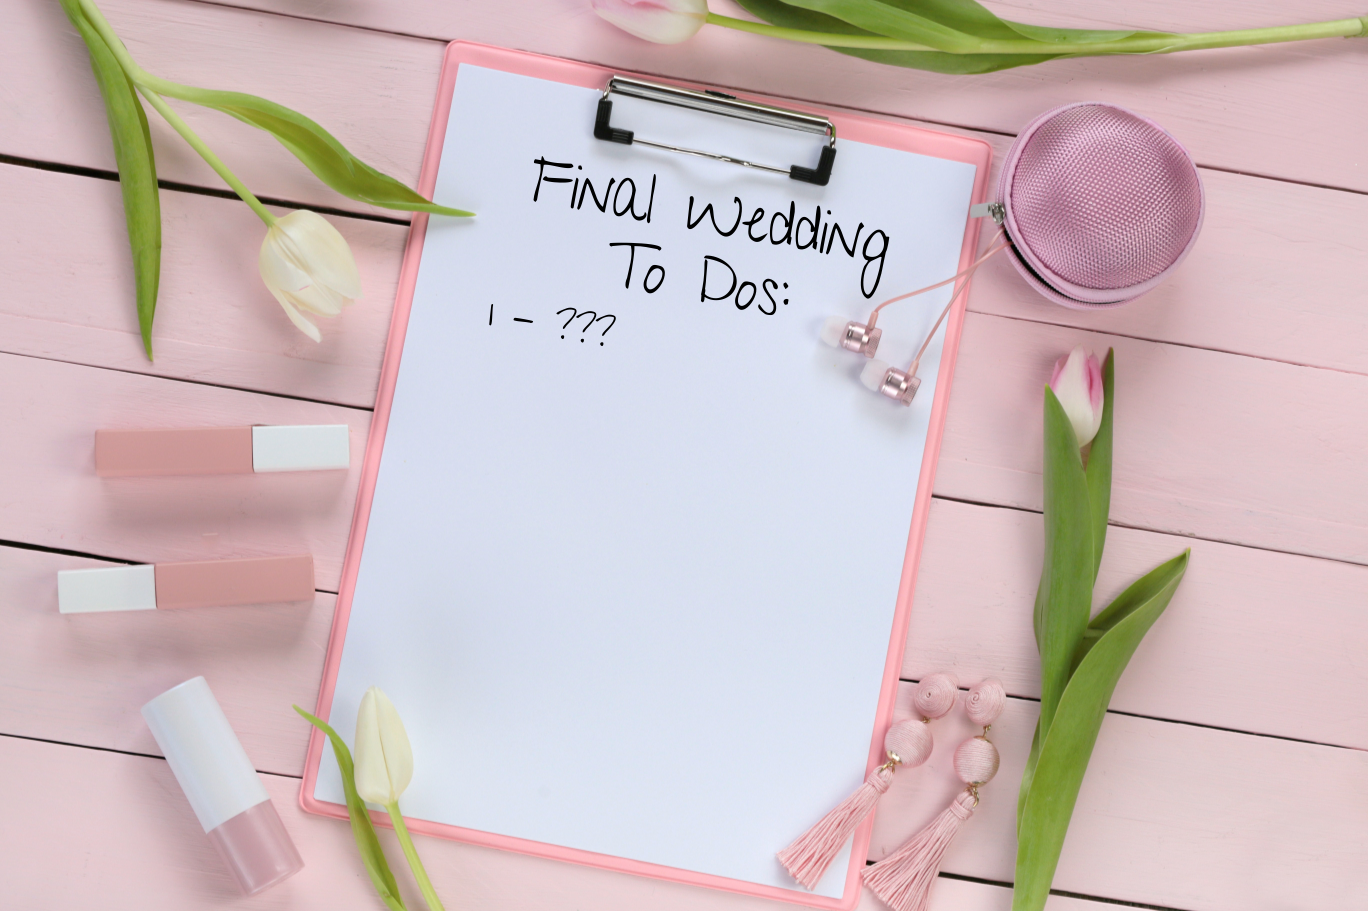 Wedding To Dos During the Final Stages of Your Planning | Organizing